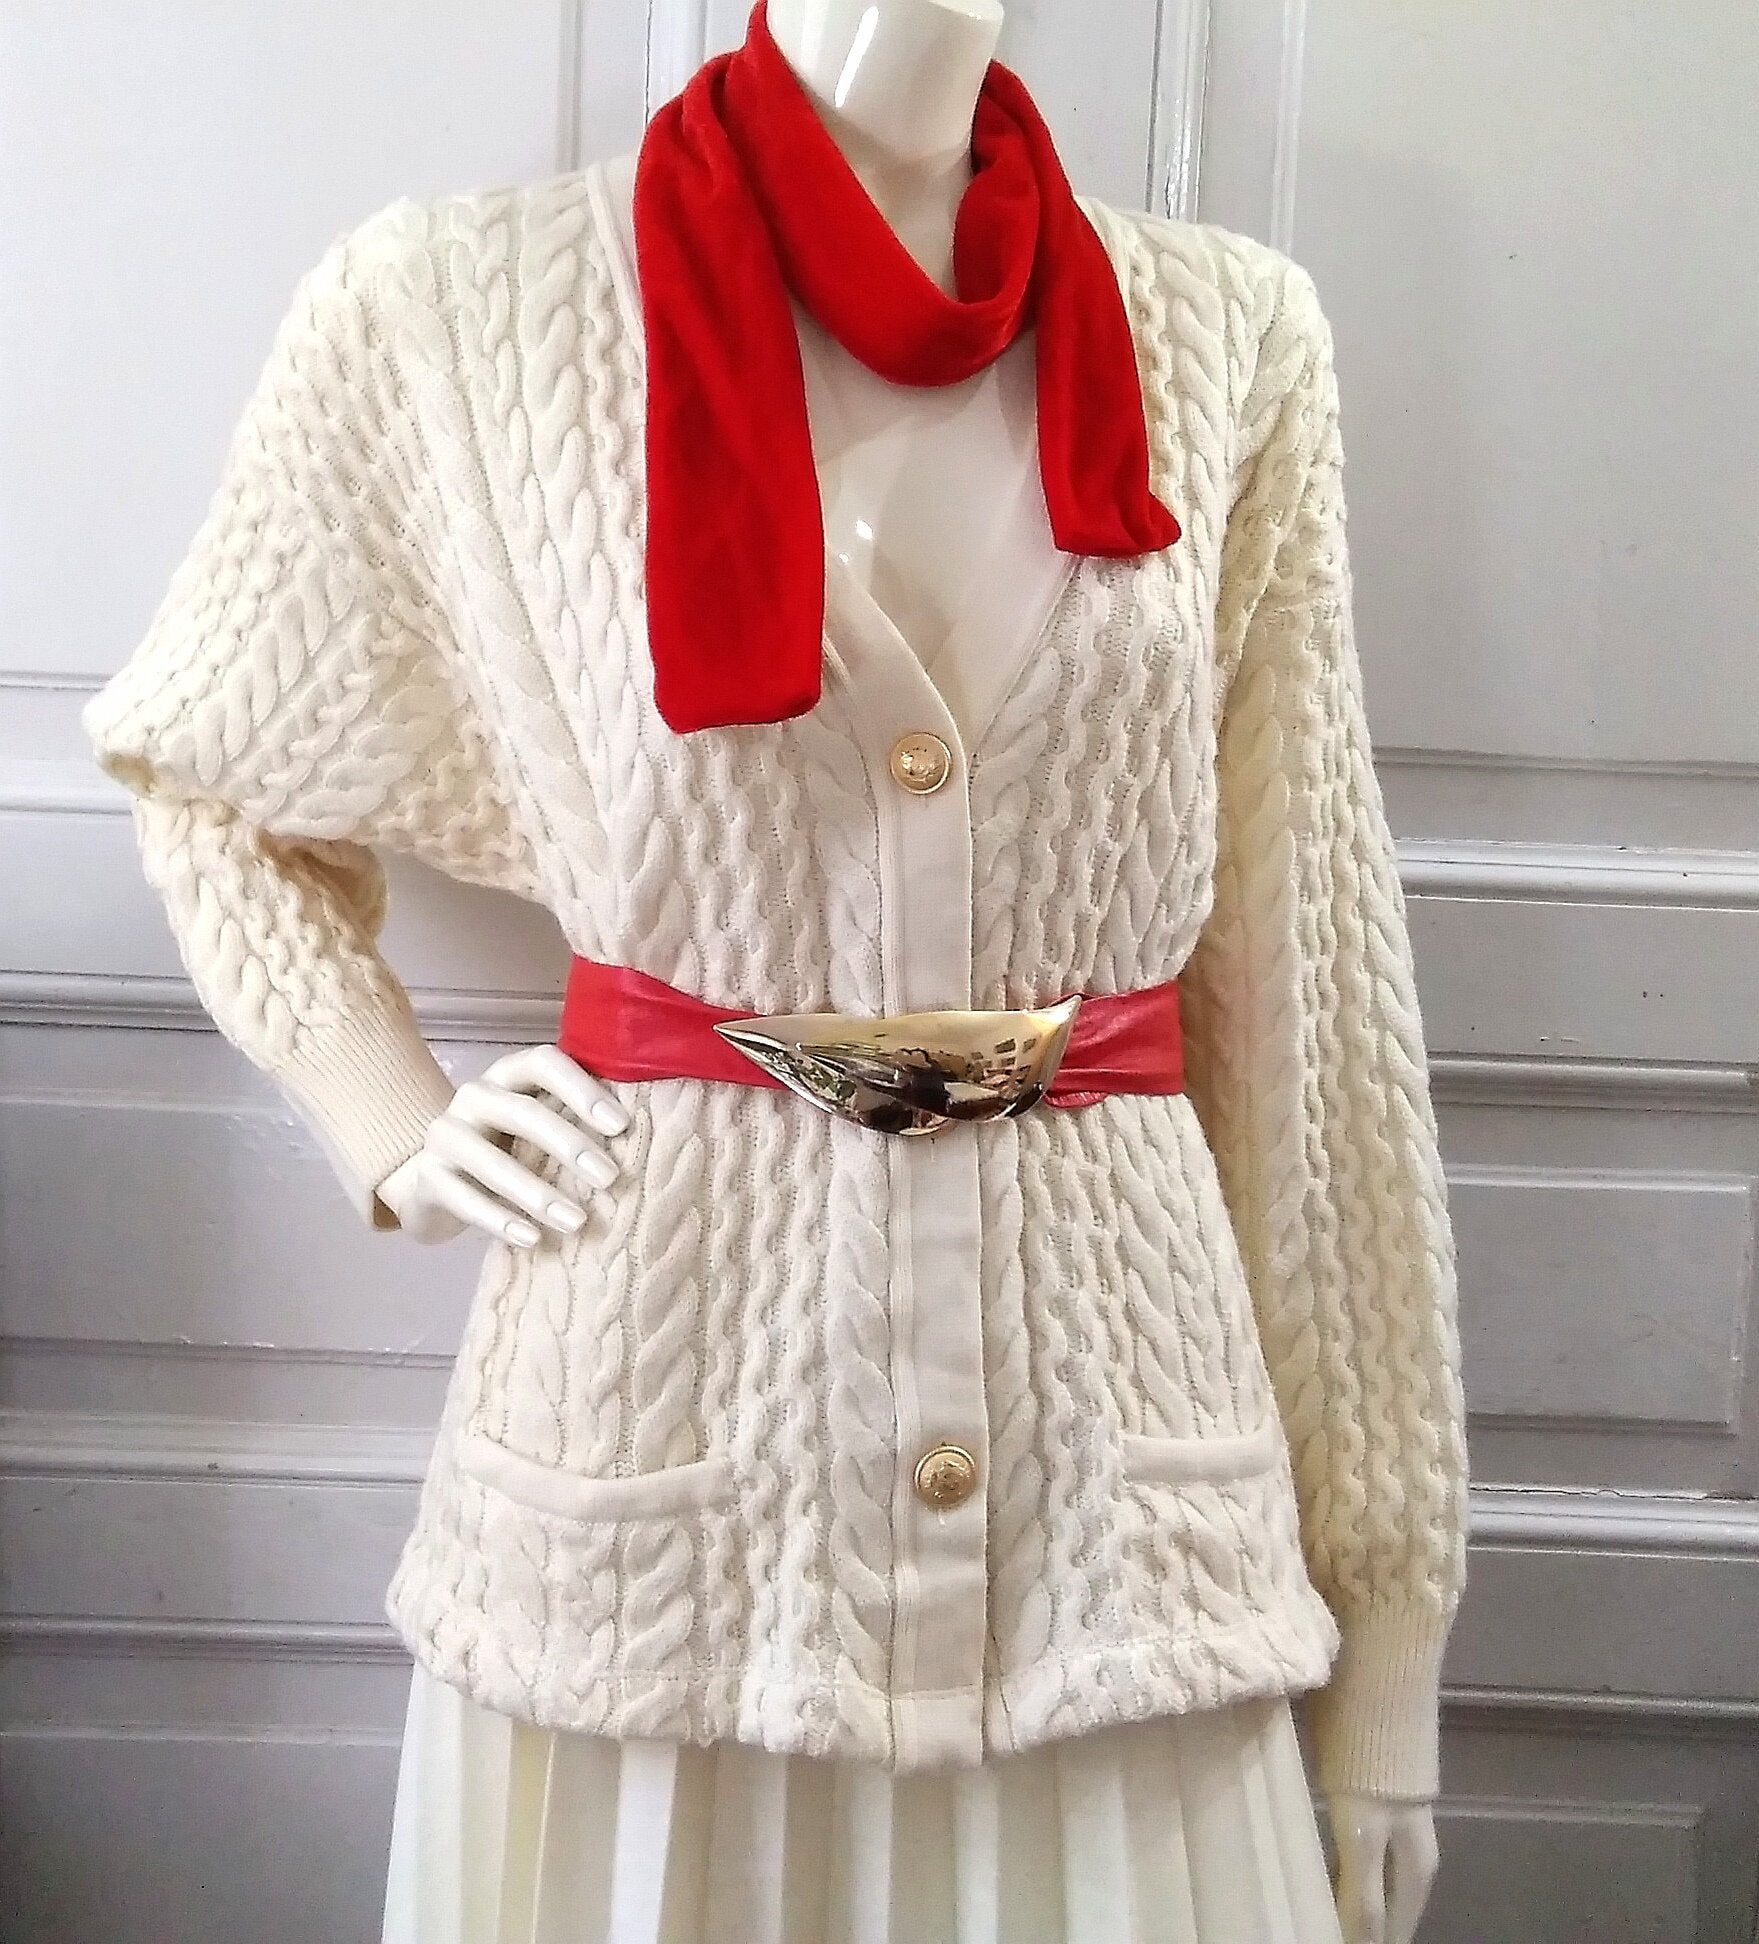 Vintage Scarf Styles -1920s to 1960s Cable Knit Extrafine Merino Wool Sweater Vintage Knitwear Winter Torsade Pattern Pullover Pure New Ribbed V-Neck Cardigan Xl $42.77 AT vintagedancer.com